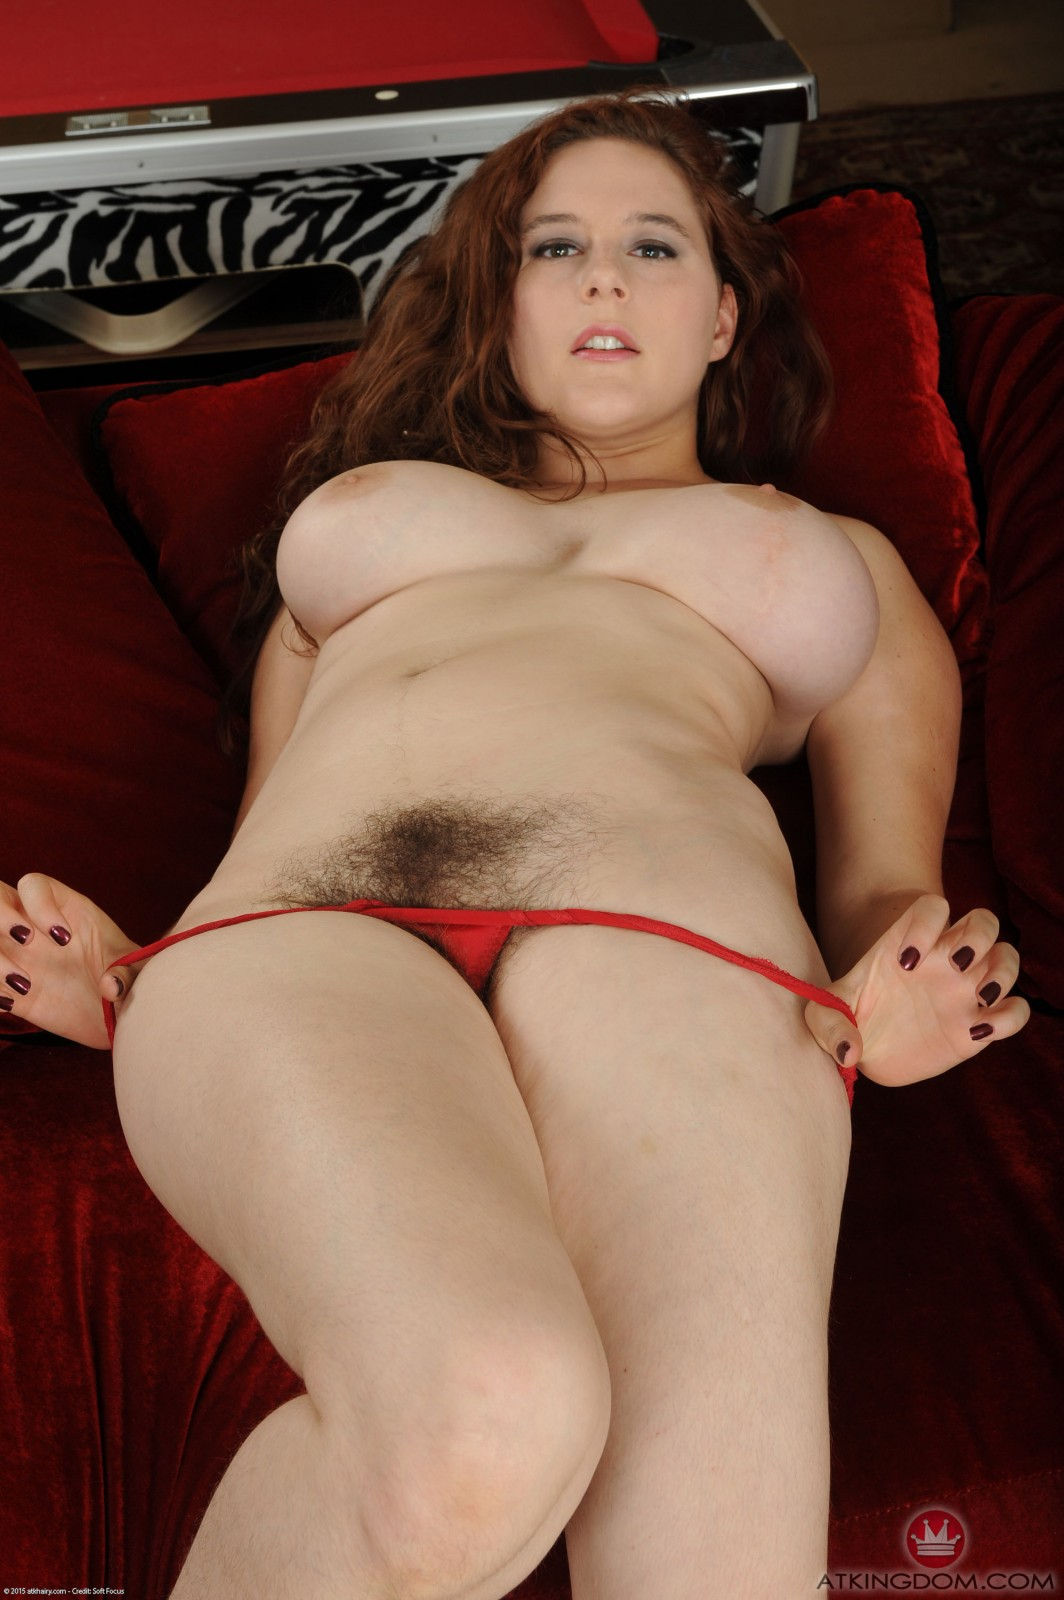 hairy pussy pictures of eleanor rose the nude and hairy